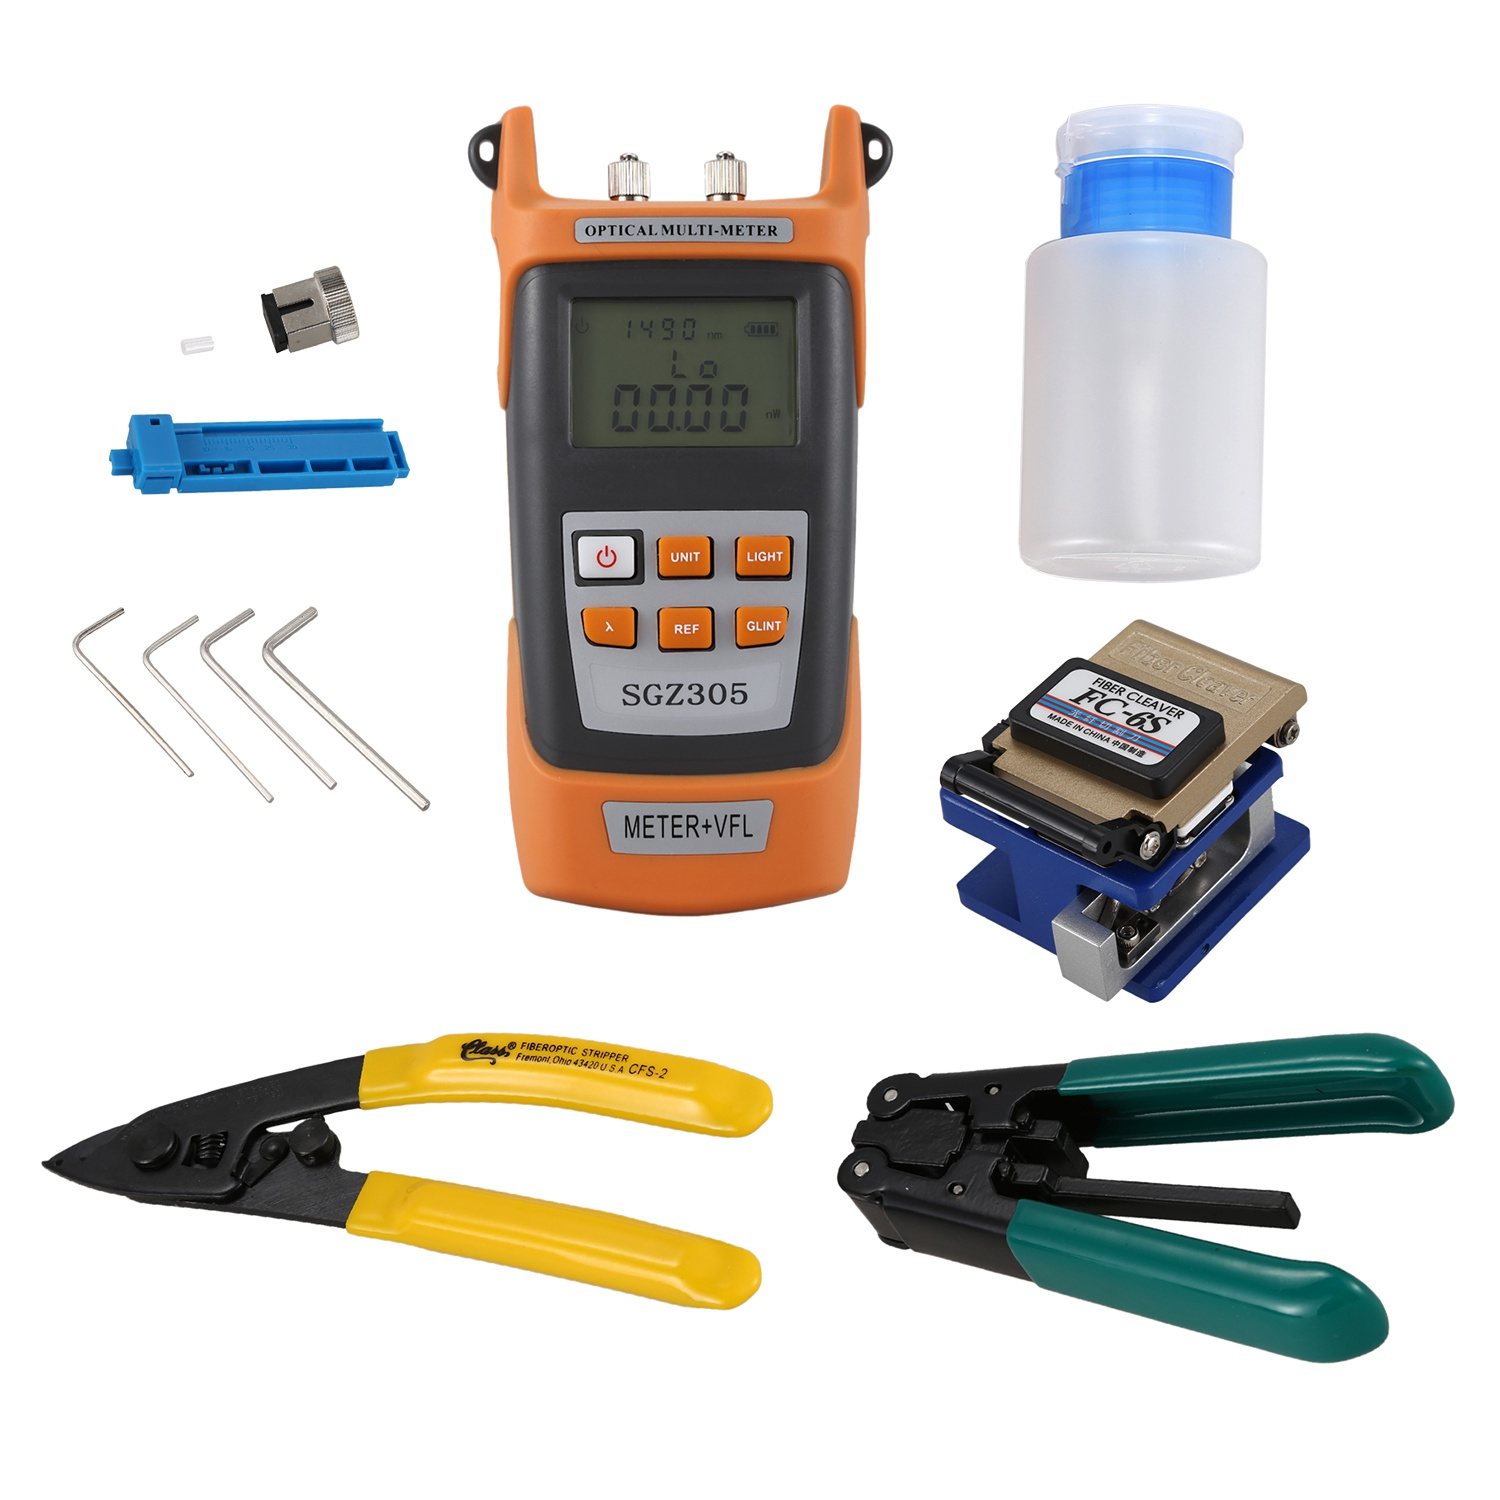 Hot Sale Fiber Optic FTTH Tool Kit With FC-6S Fiber Cleaver And Optical Power Meter 5km Visual Fault Locator 1mw Wire StripperHot Sale Fiber Optic FTTH Tool Kit With FC-6S Fiber Cleaver And Optical Power Meter 5km Visual Fault Locator 1mw Wire Stripper